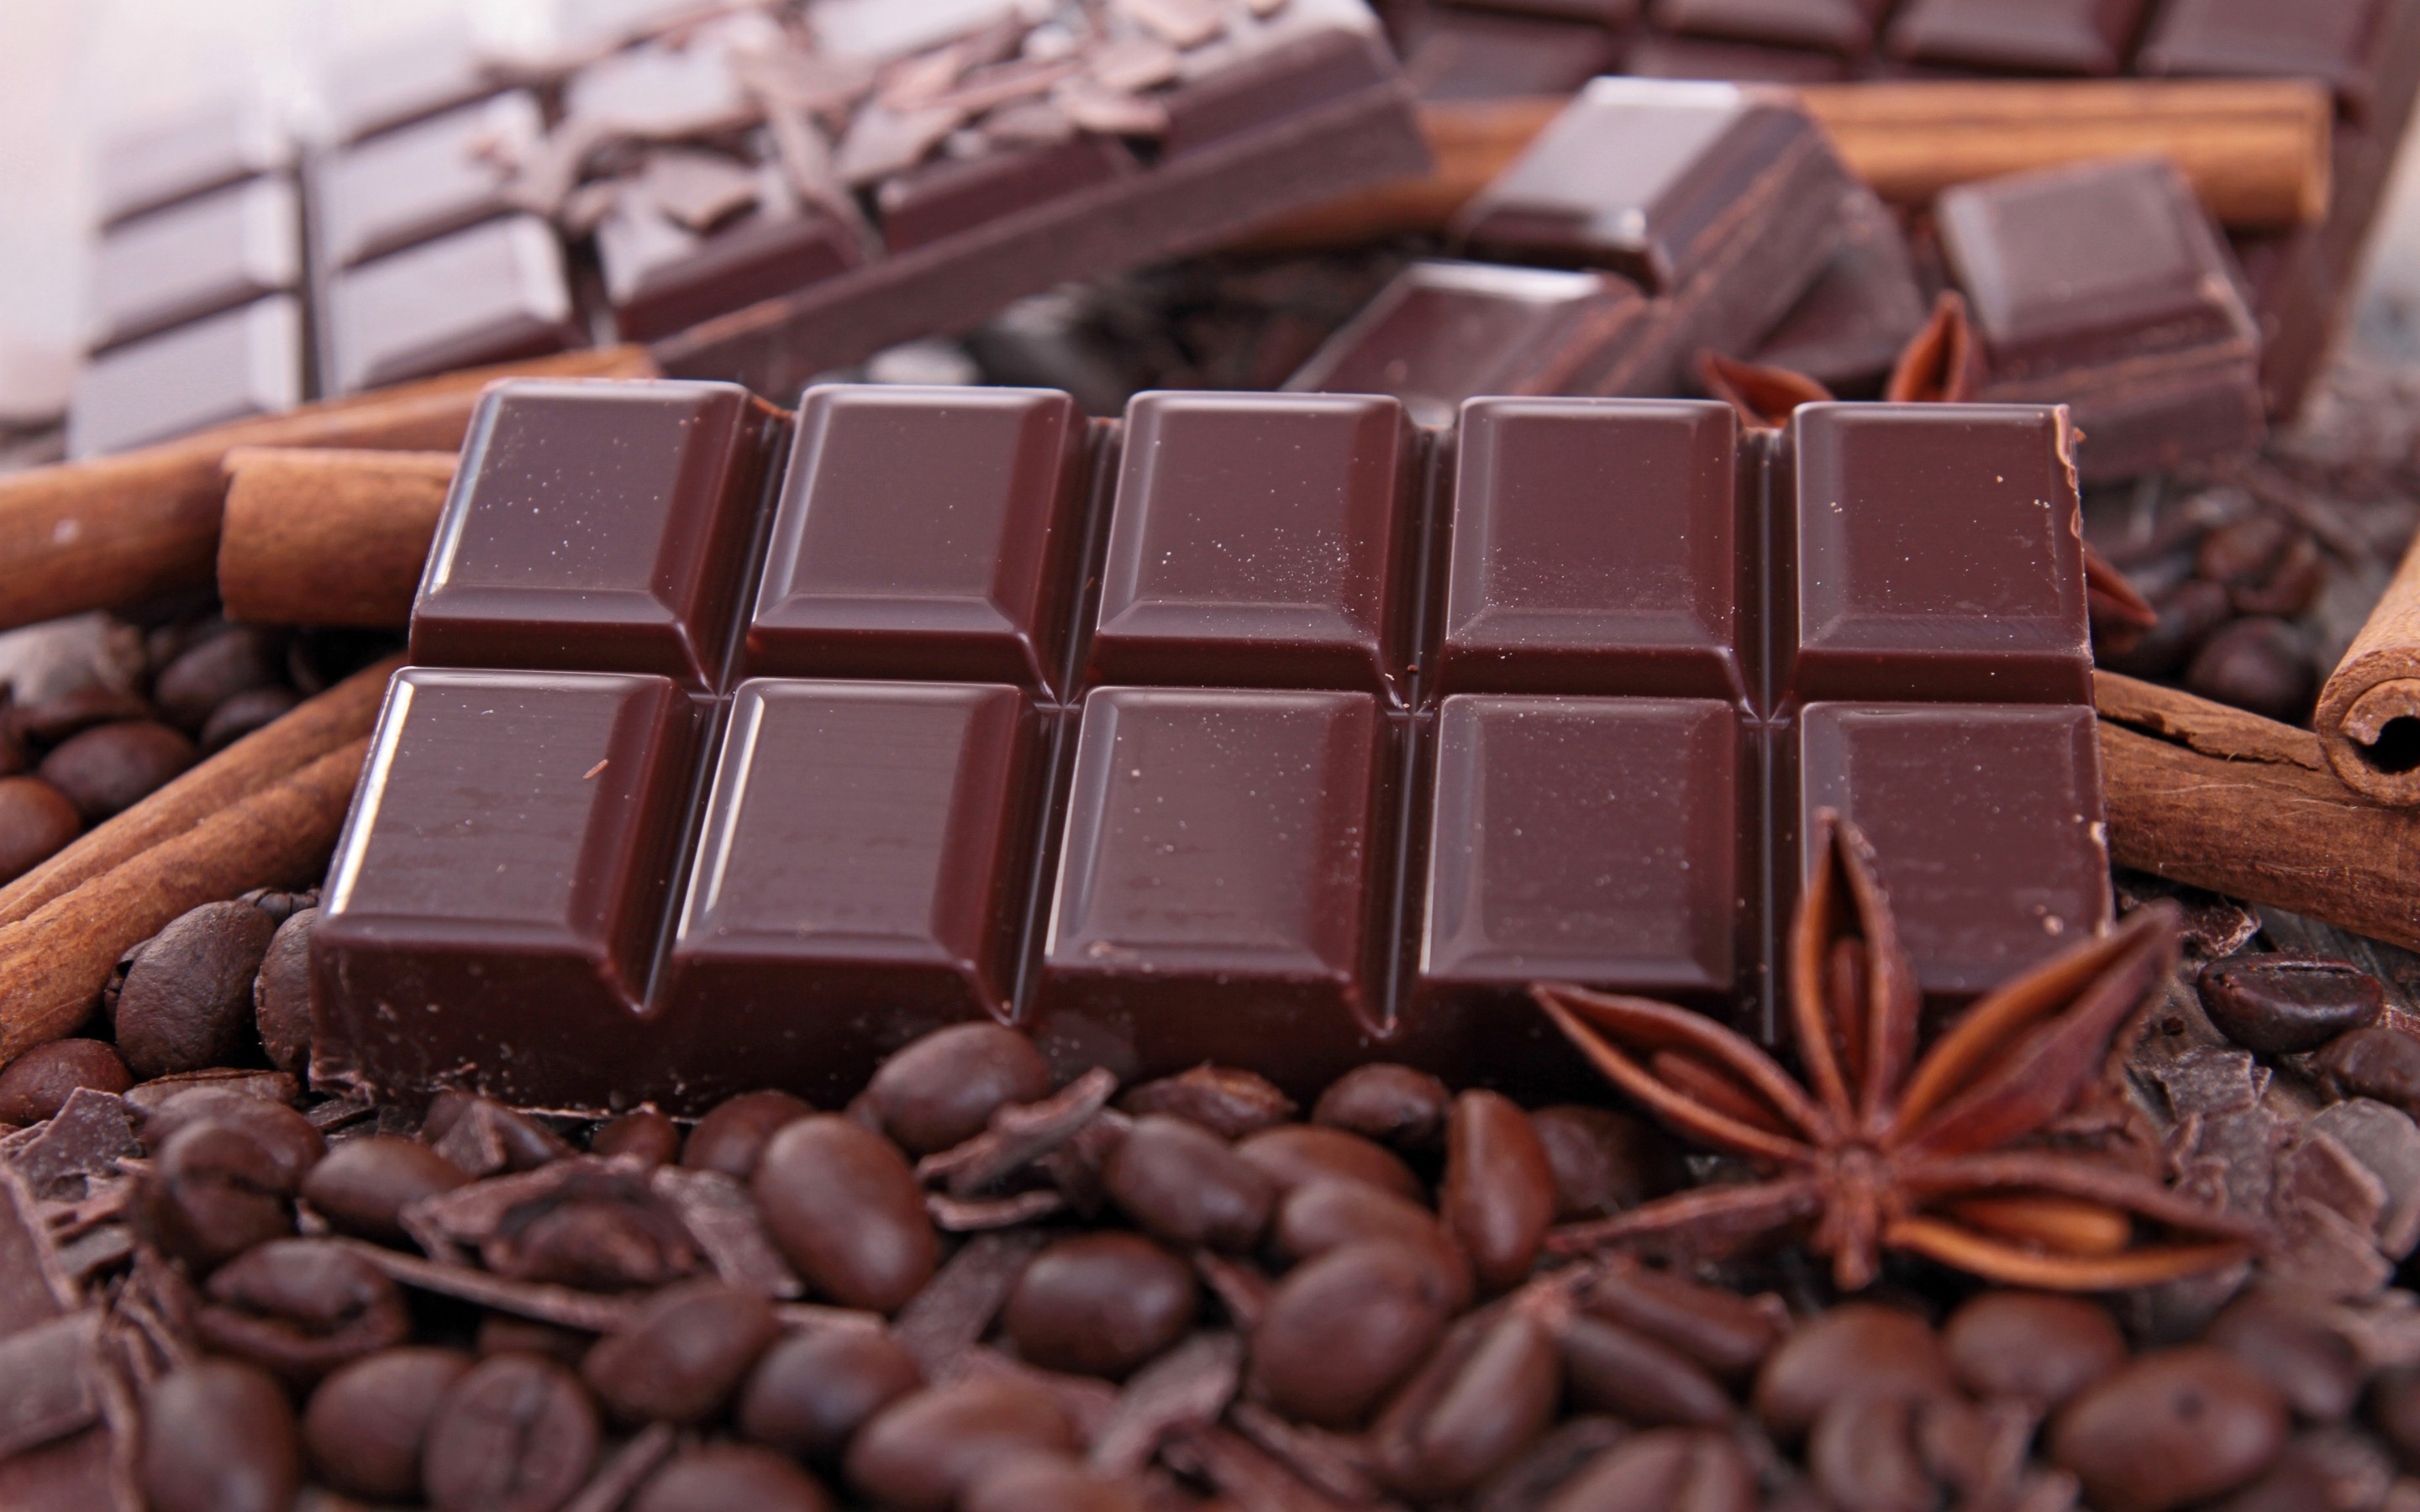 Chocolate Day Wallpapers HD Pictures One HD Wallpaper Pictures 2880x1800